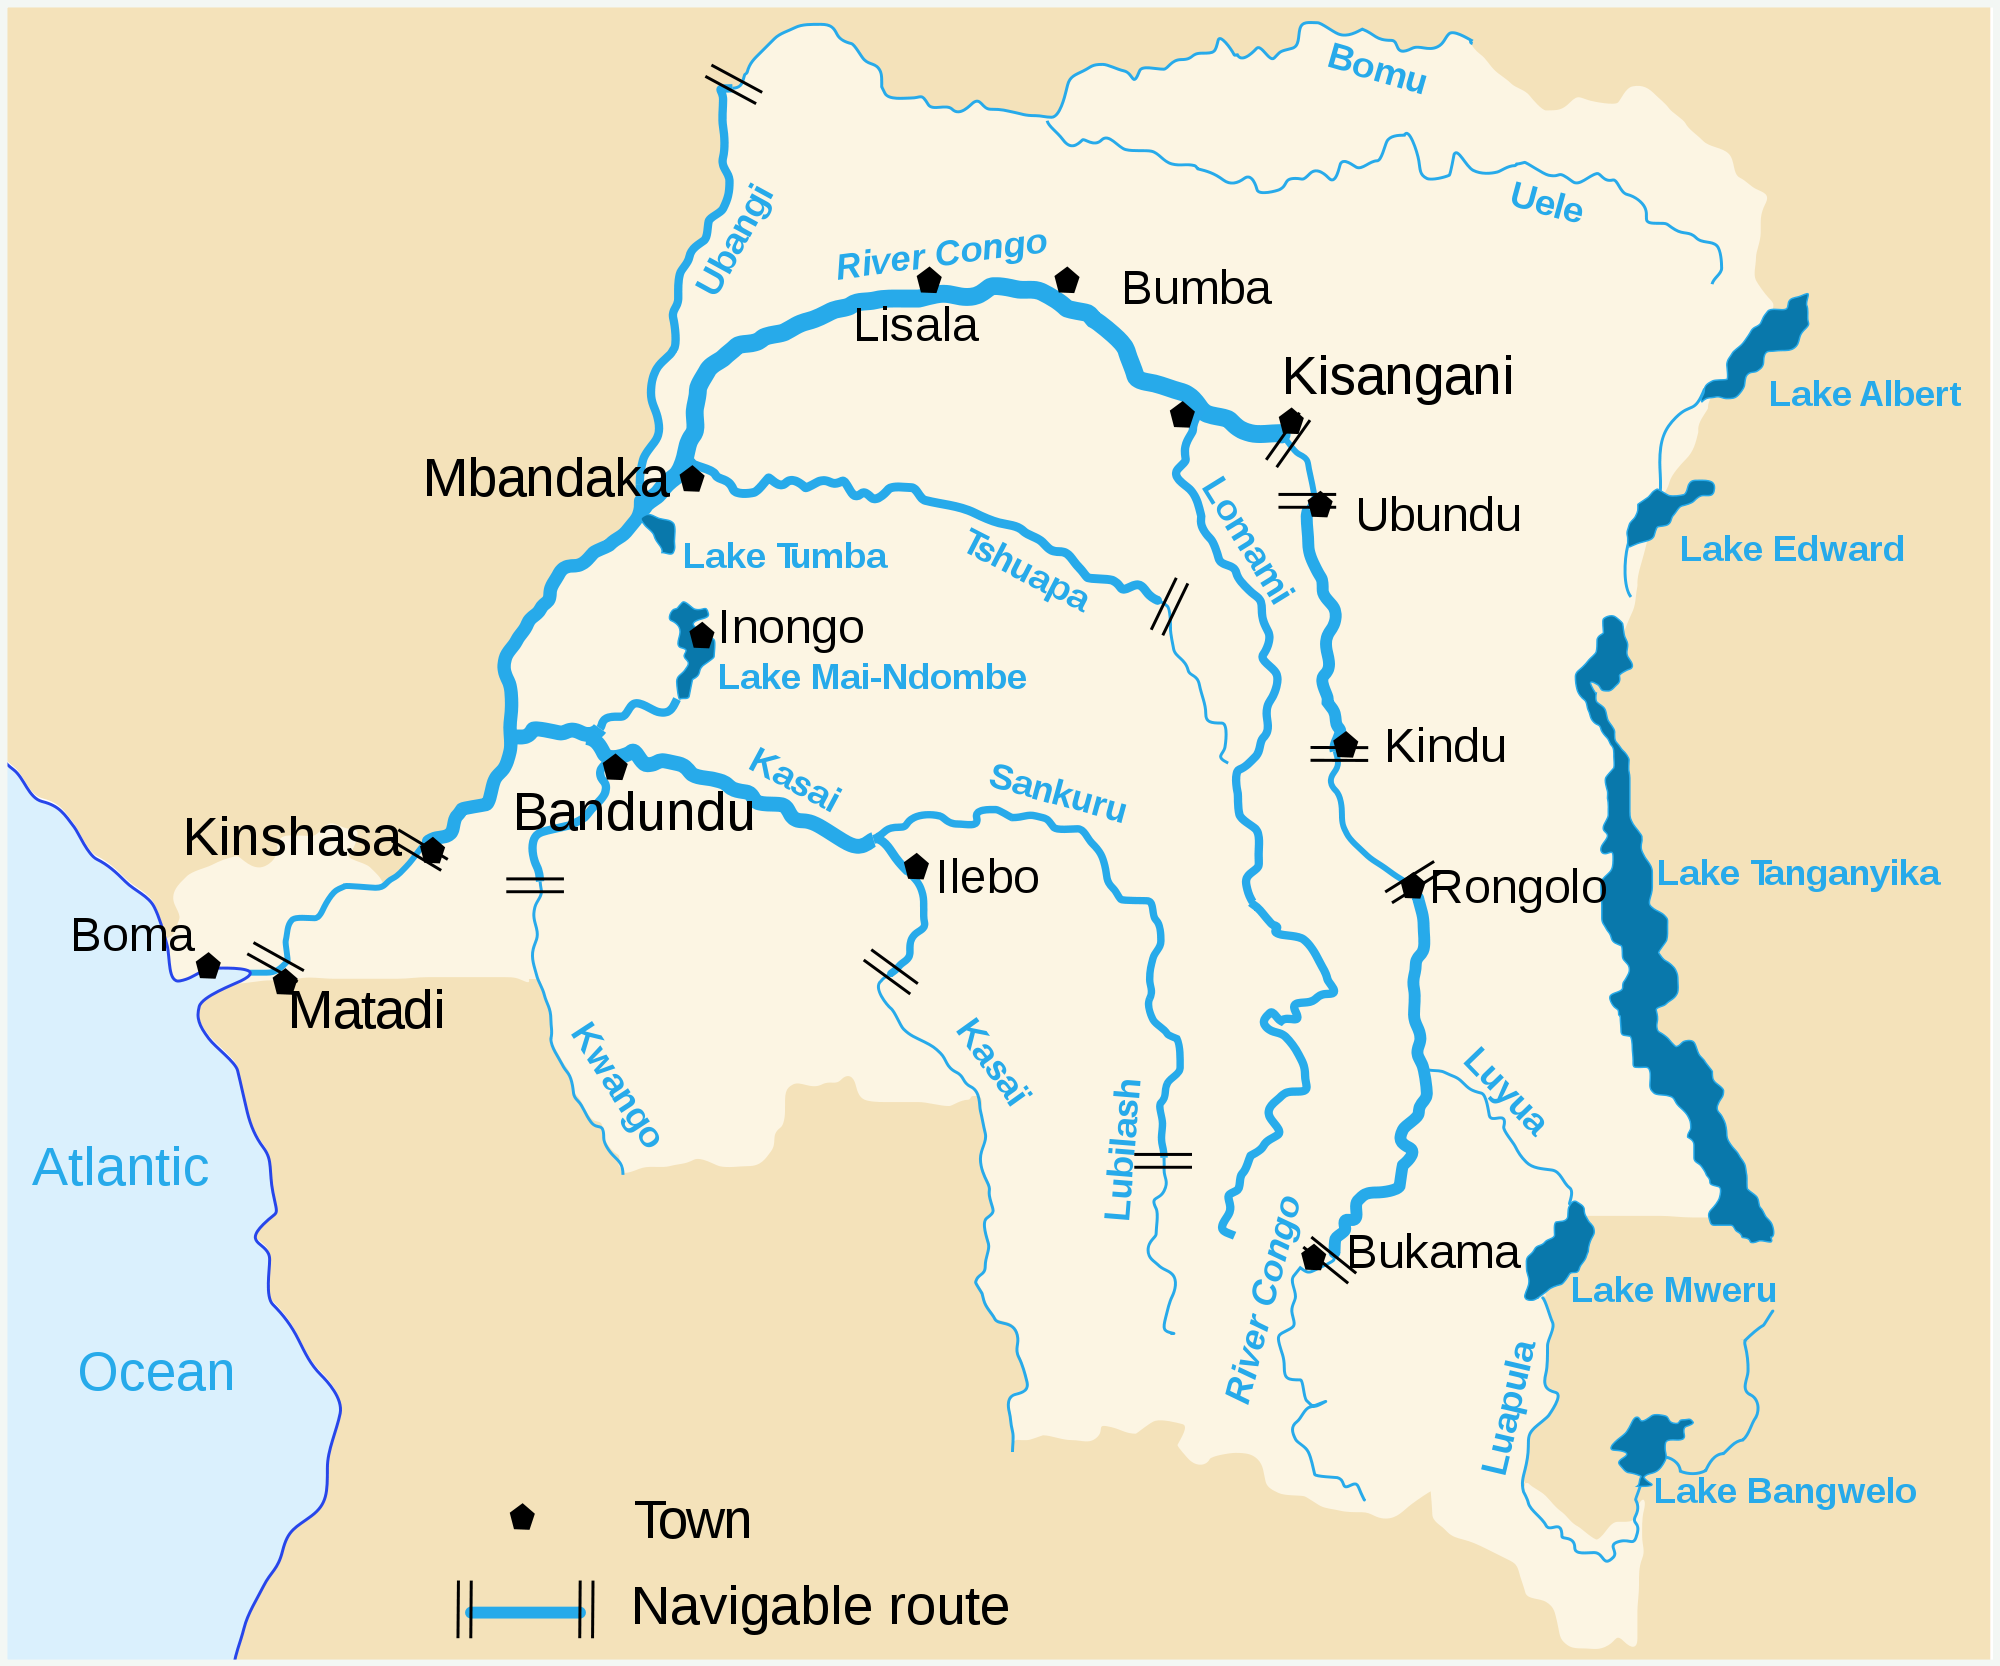 congo river south africa map